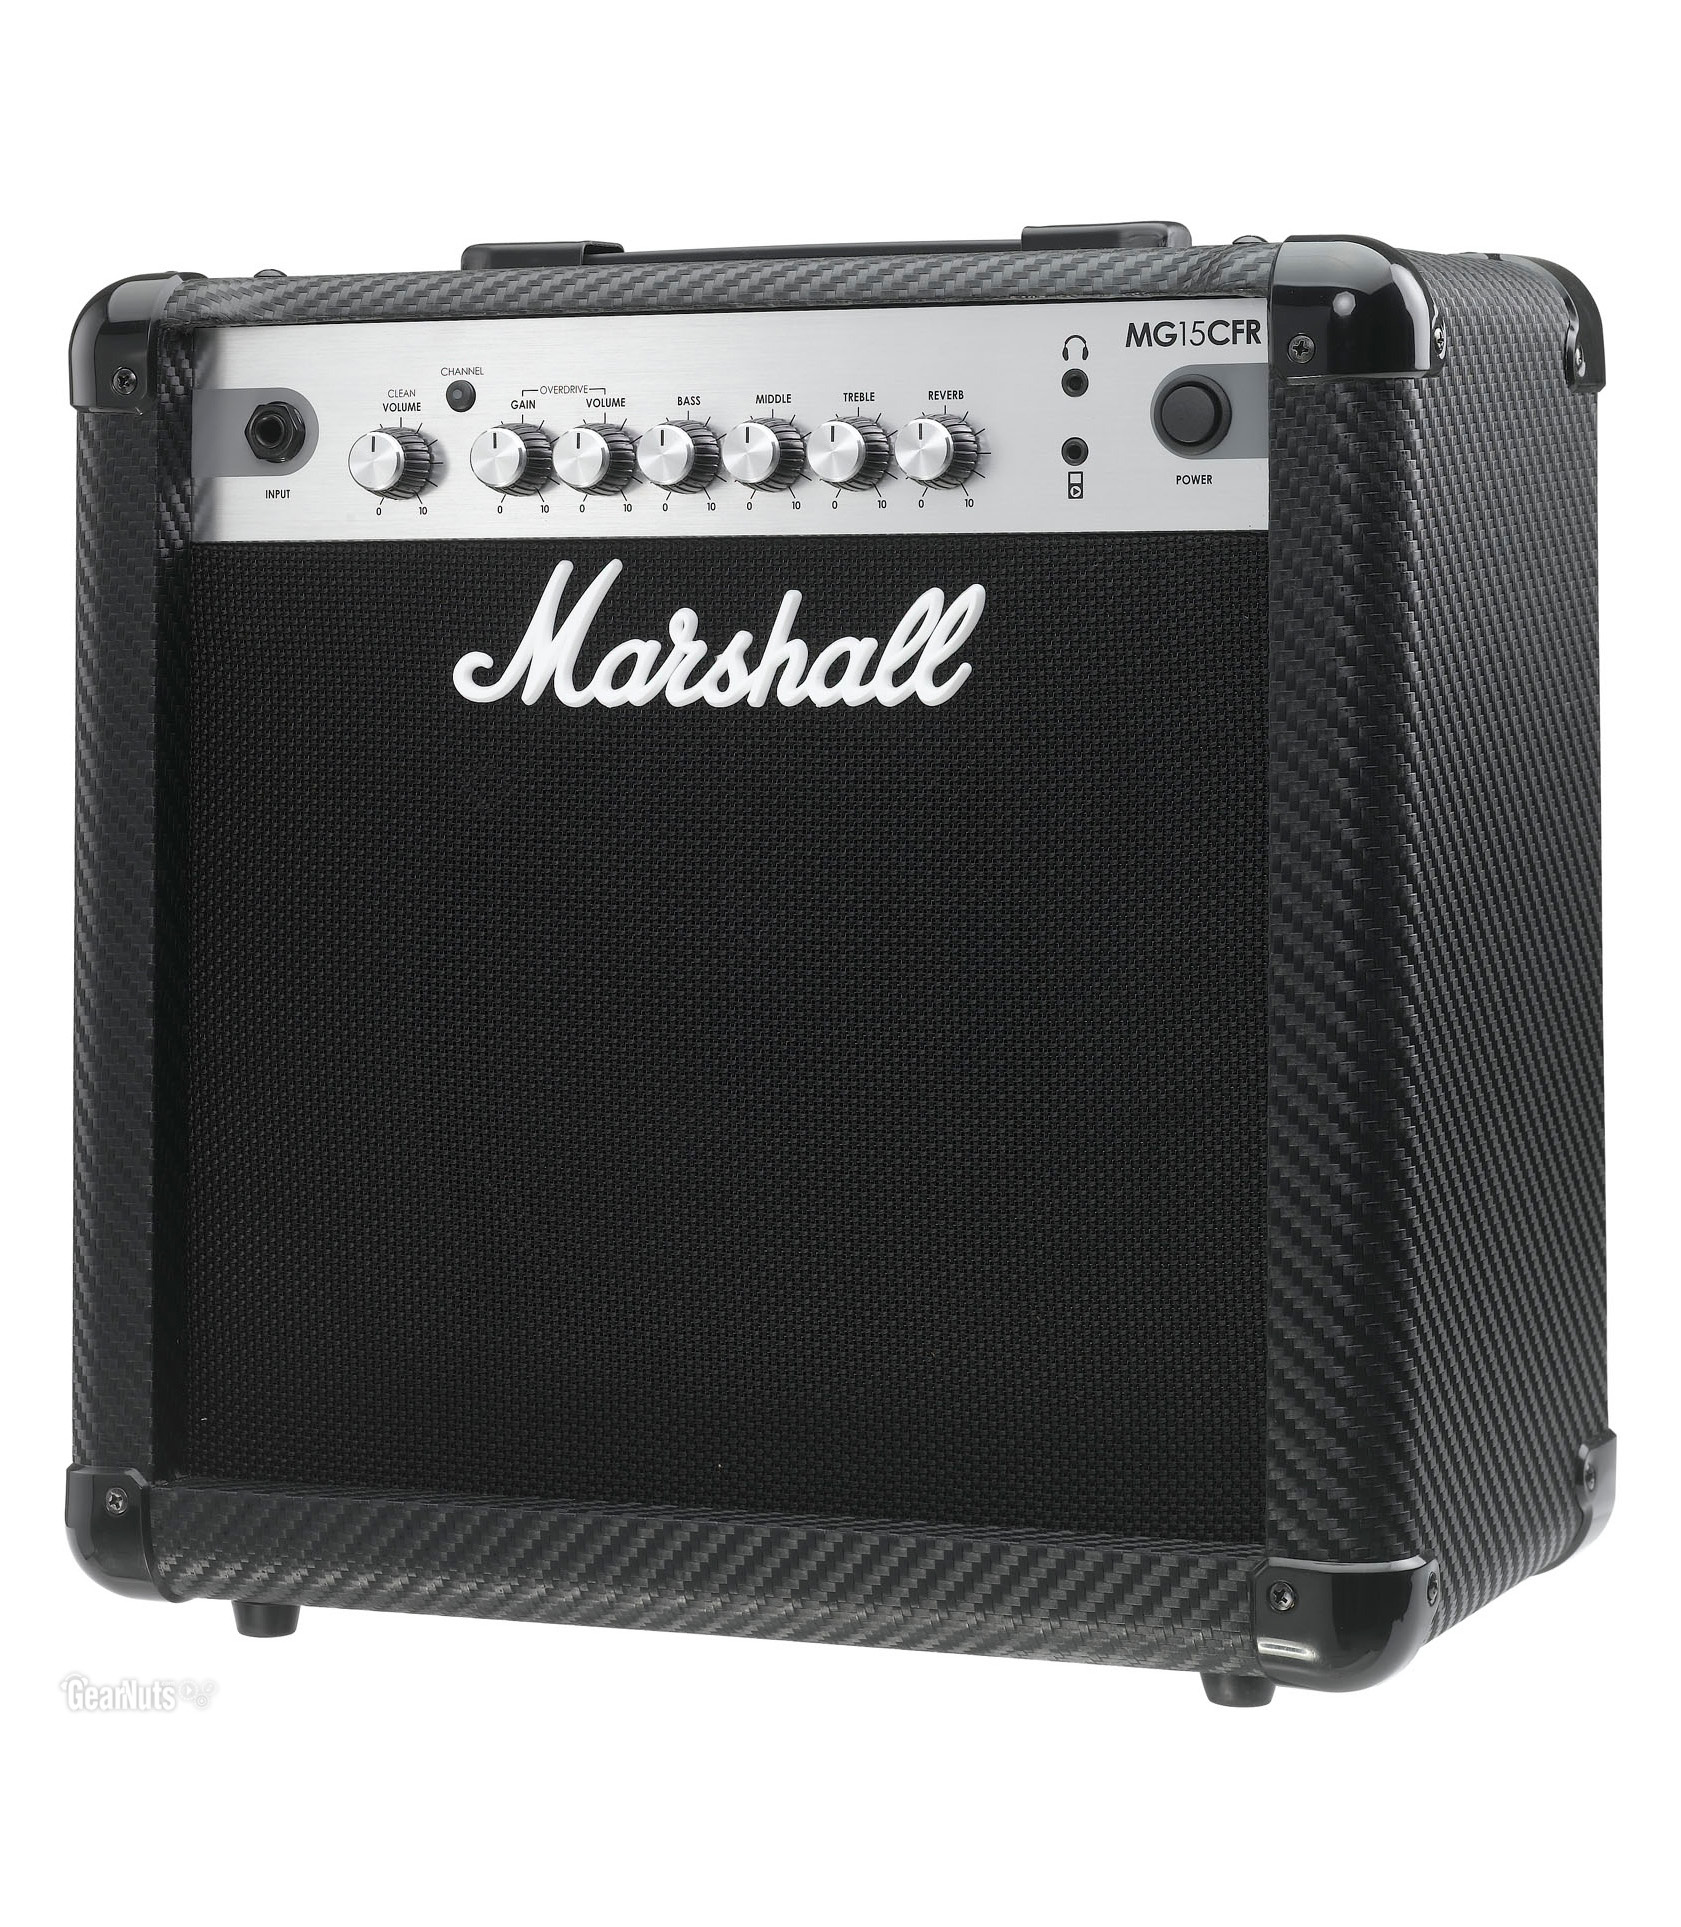 MG15CFR Marshall Solid state Guitar Amp 2 Channel - Buy Online